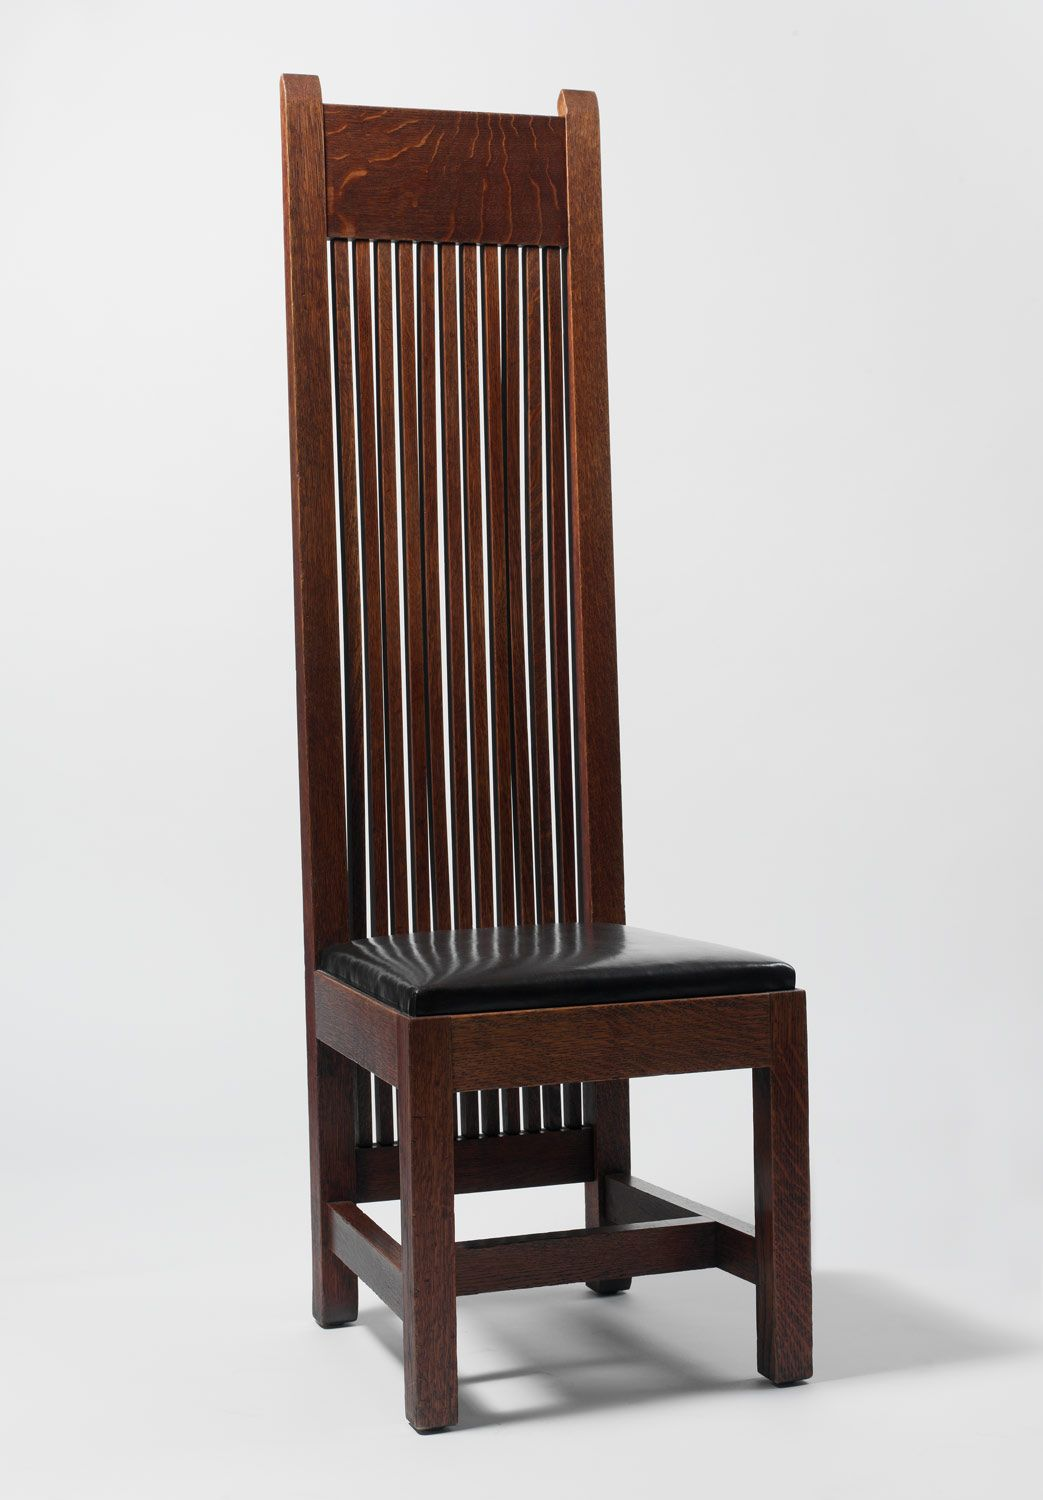 side chair maker frank lloyd wright american richland center wisconsin 1867 1959 phoenix. Black Bedroom Furniture Sets. Home Design Ideas